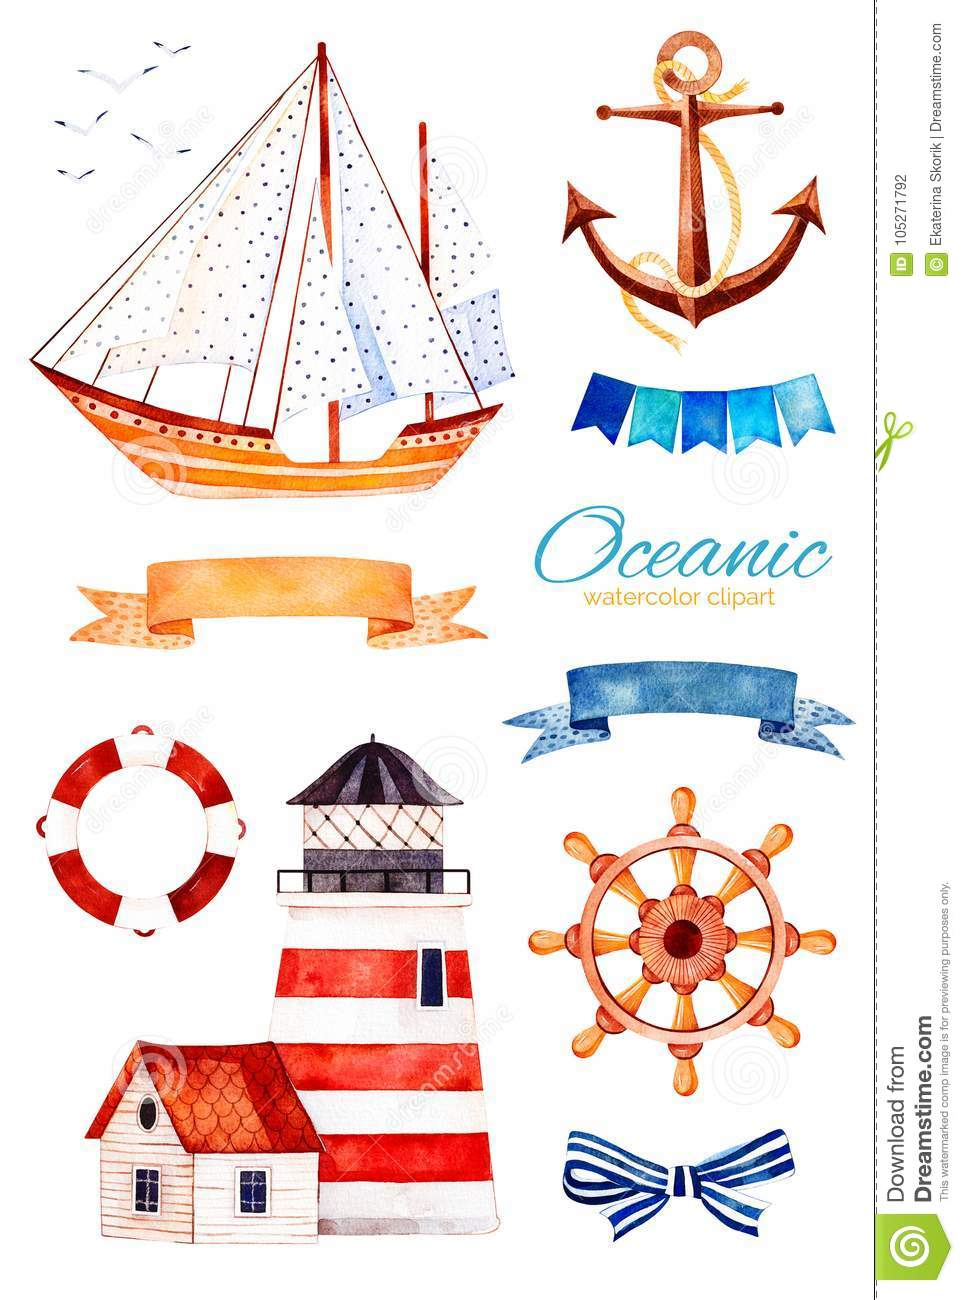 Ocean creature with anchor,lighthouse,ribbon and bow,bunting flags,sailboat